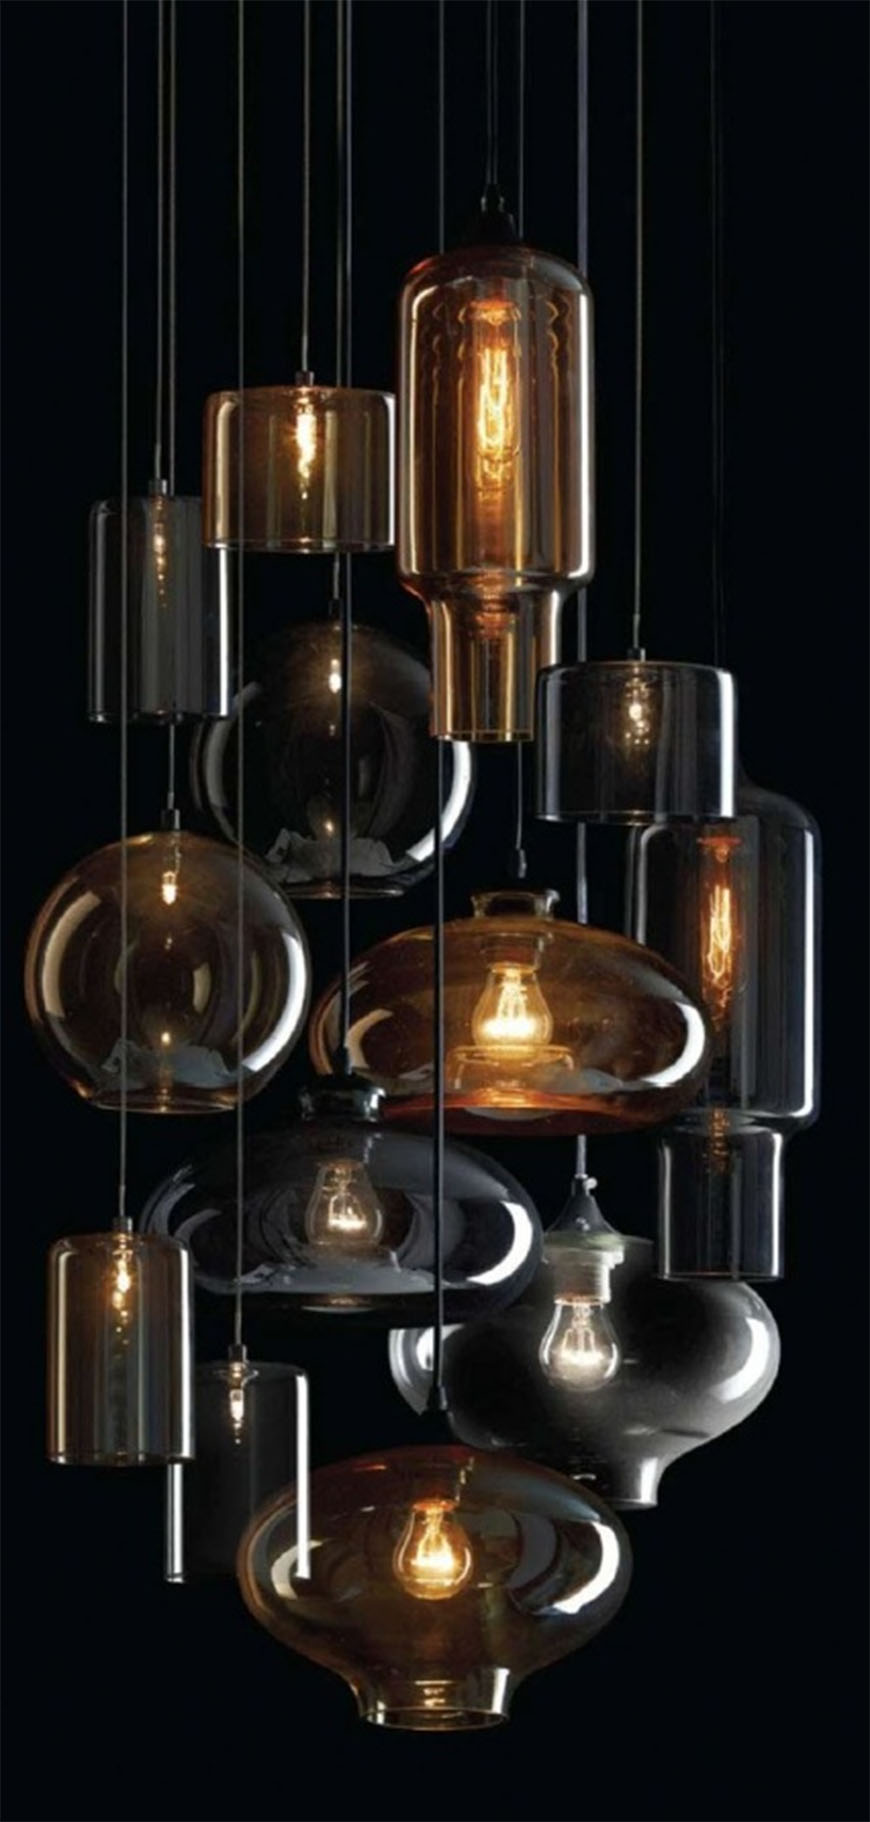 Top 5 for modern home décor in 2015 interiors 15